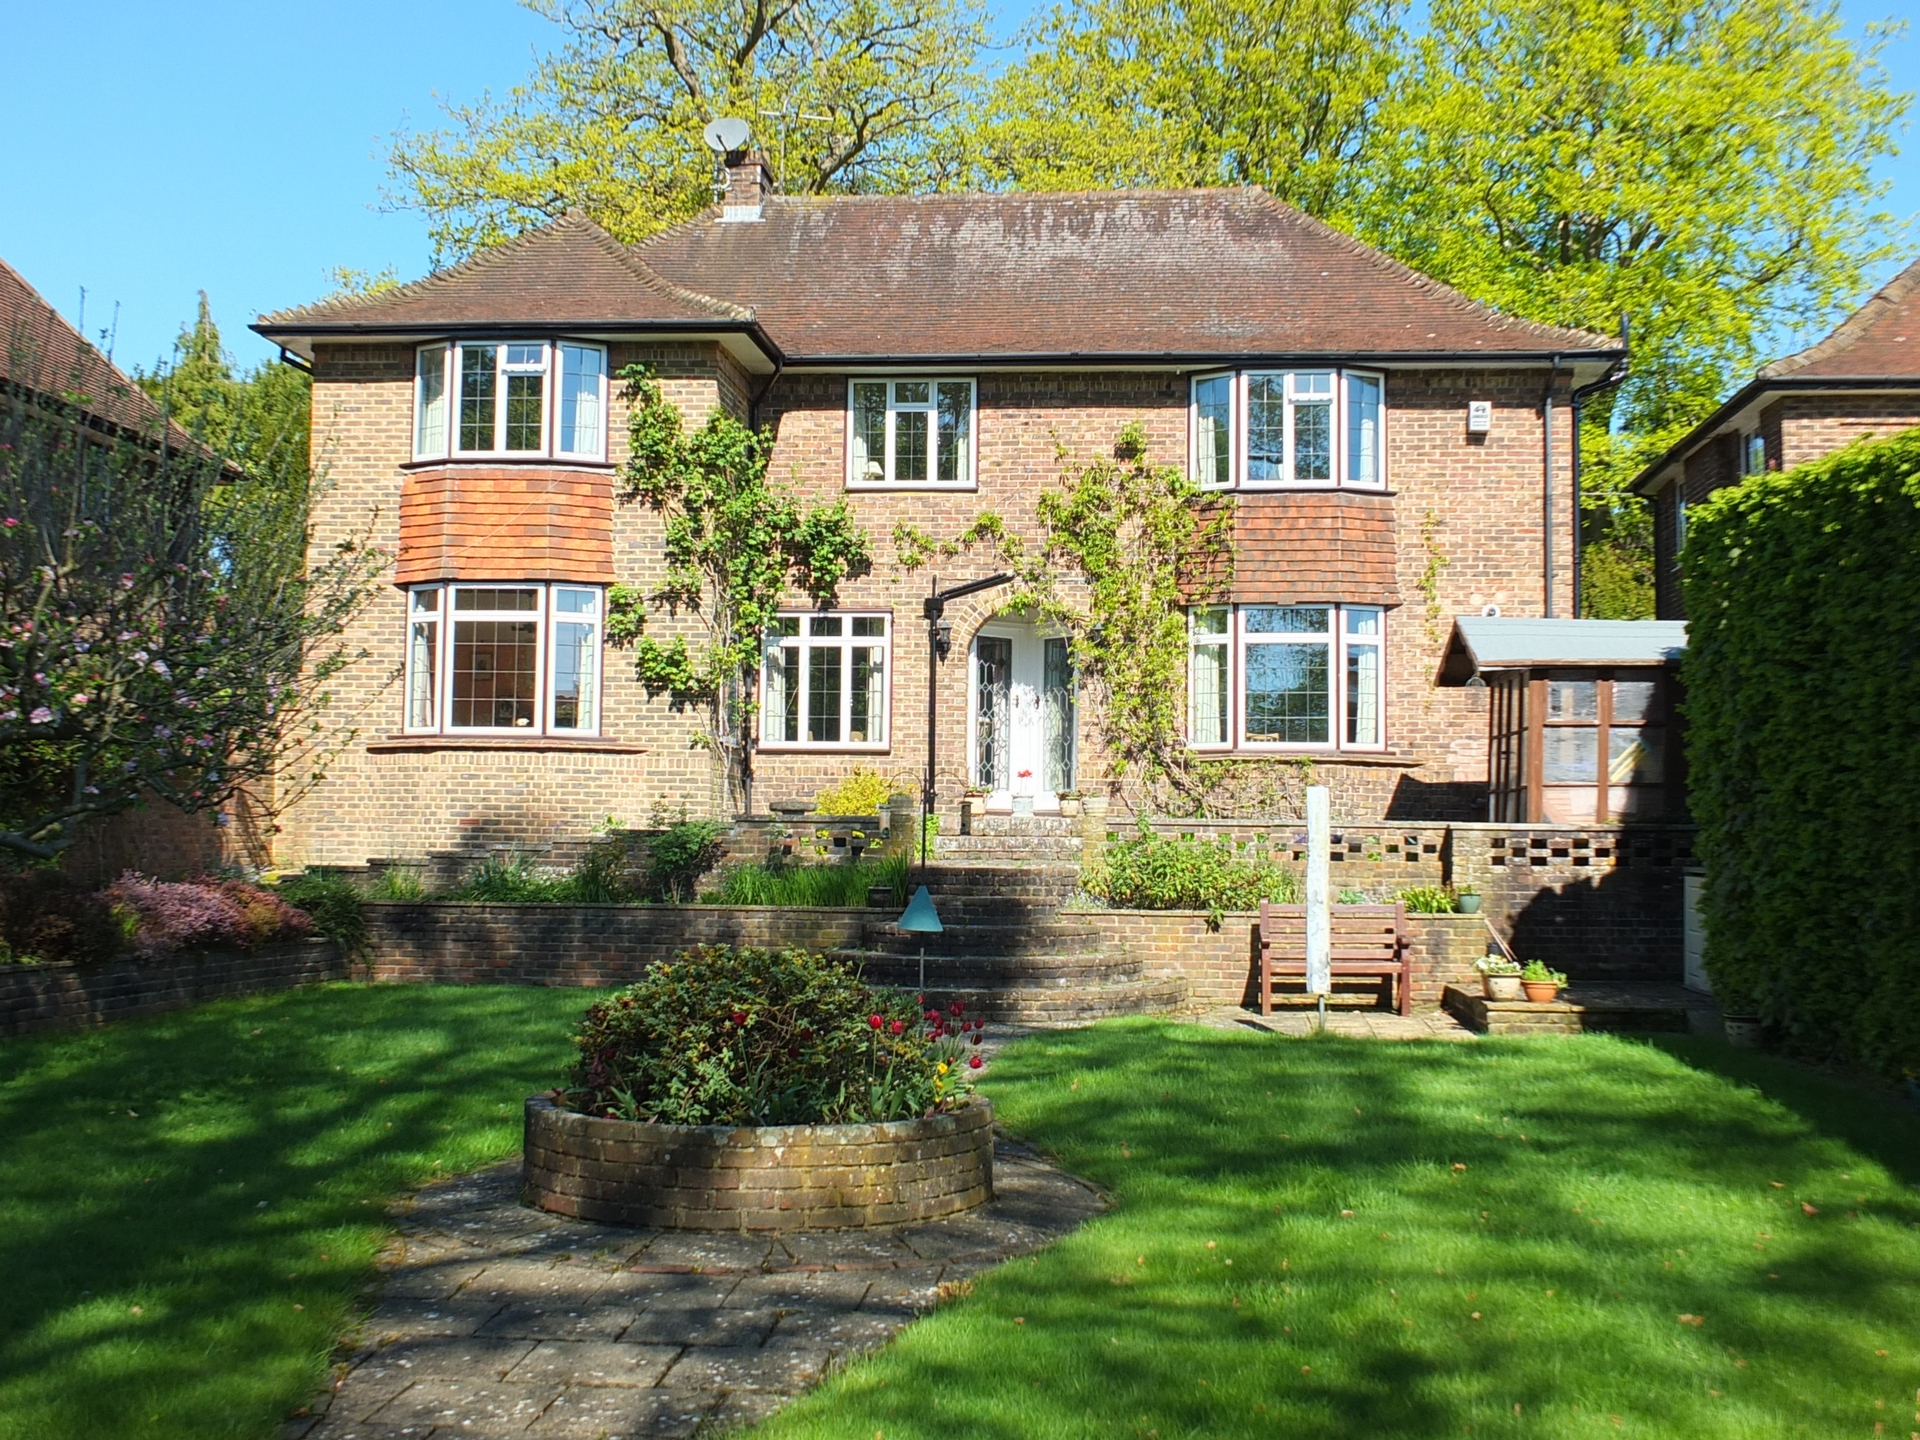 Photo 2, West Common, Lindfield, RH16